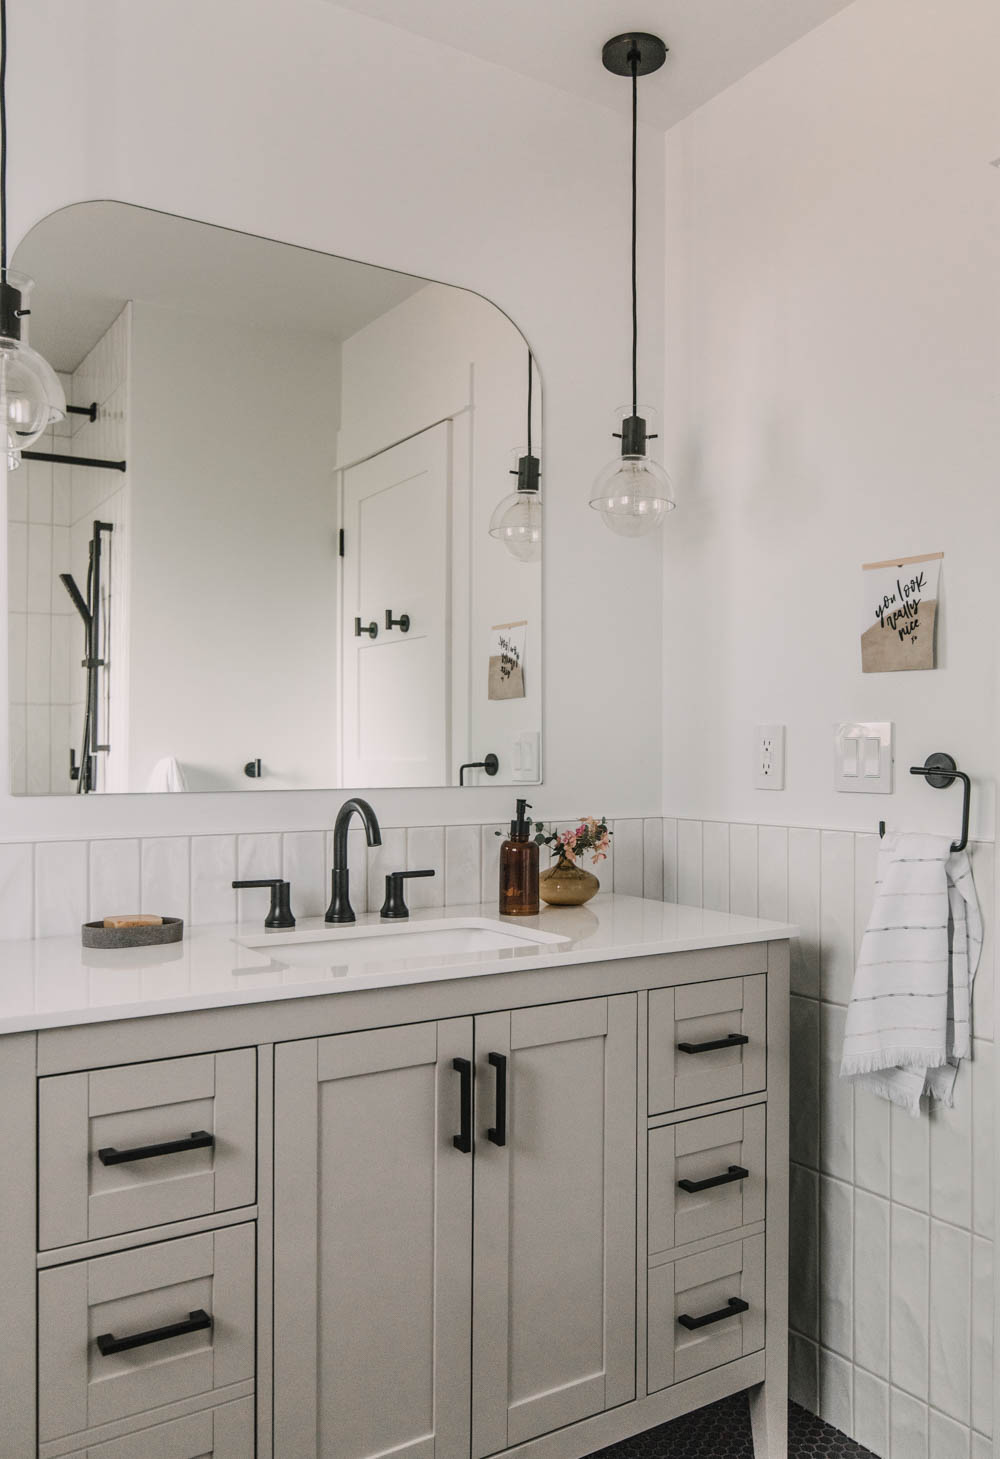 pendant lights with an arch mirror over the vanity